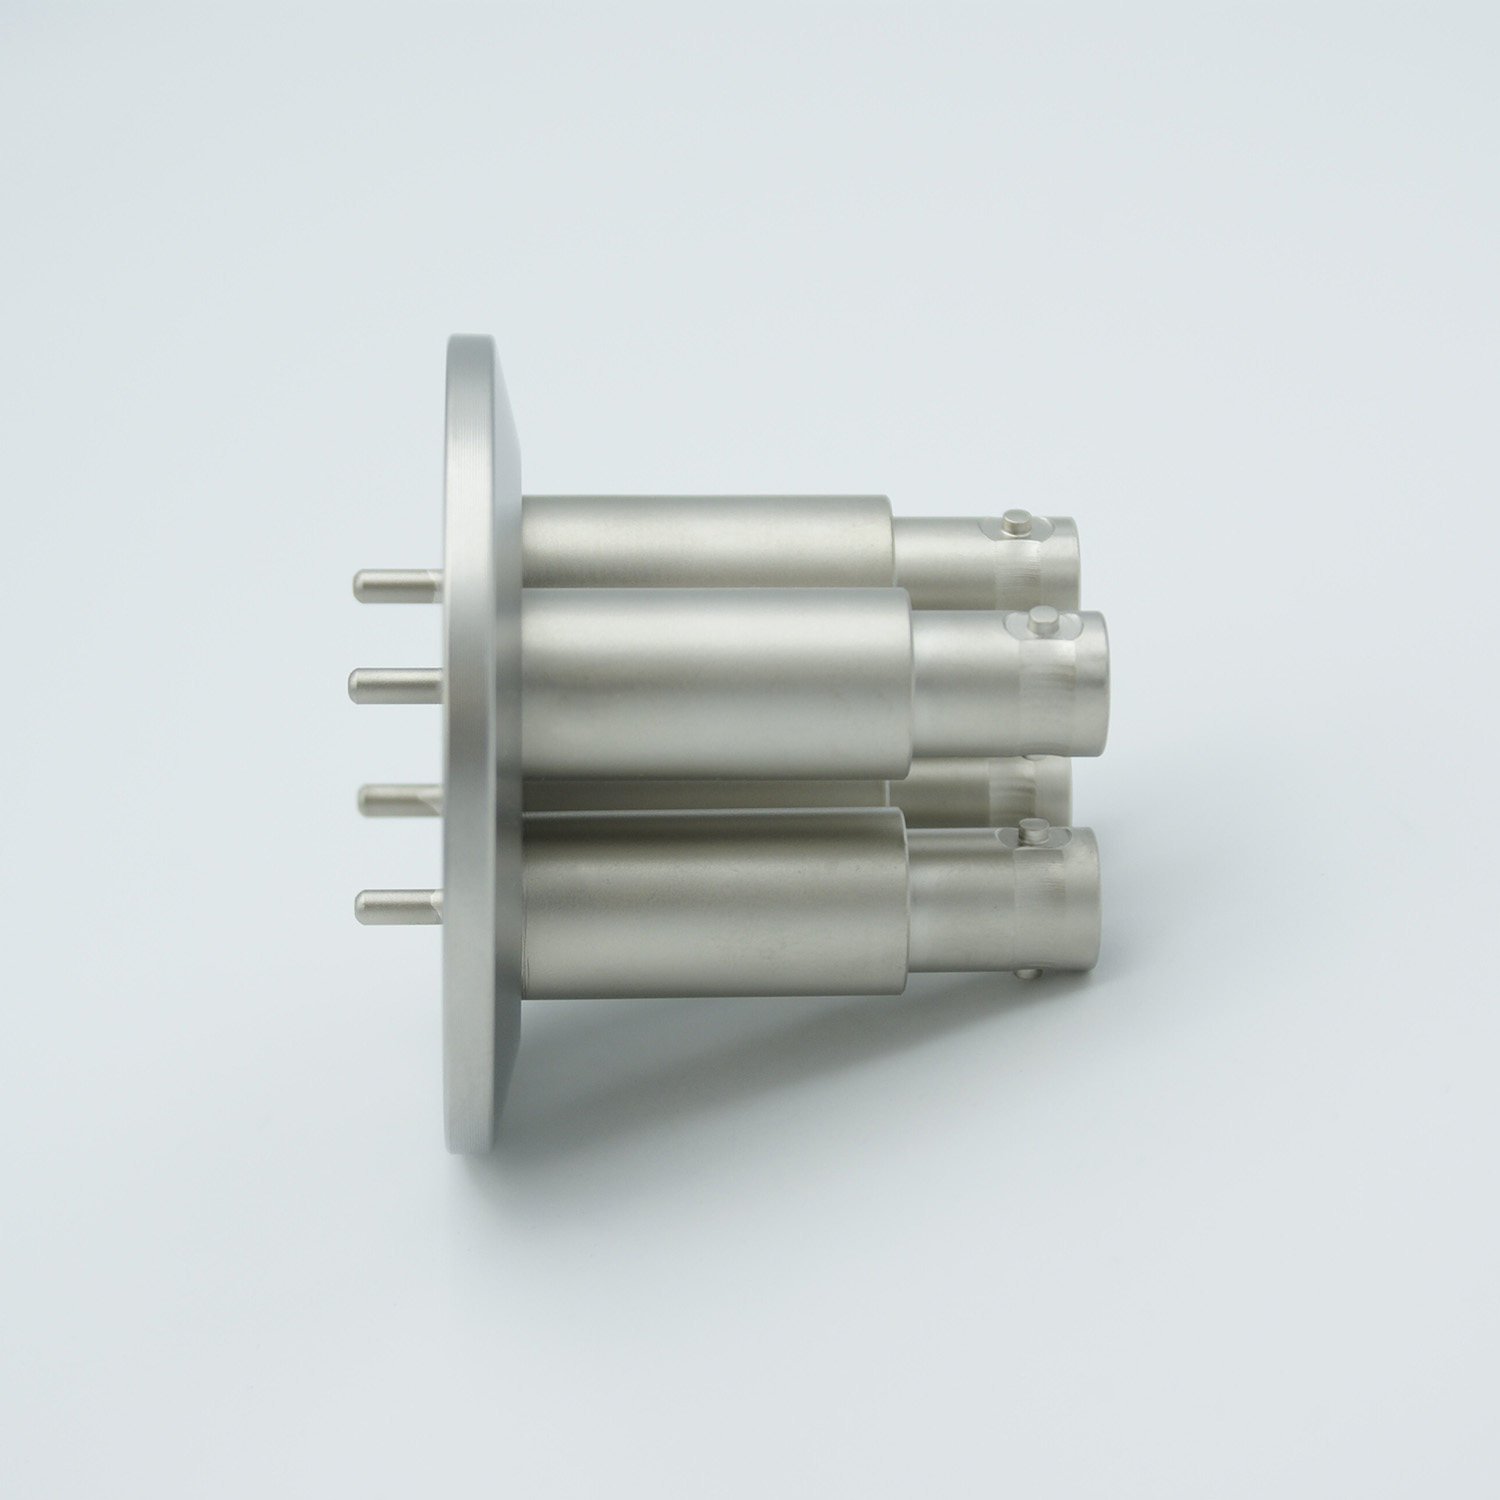 4 of grounded shield, single ended BNC feedthrough 500V / 3 Amp, air side connector included DN40KF flange